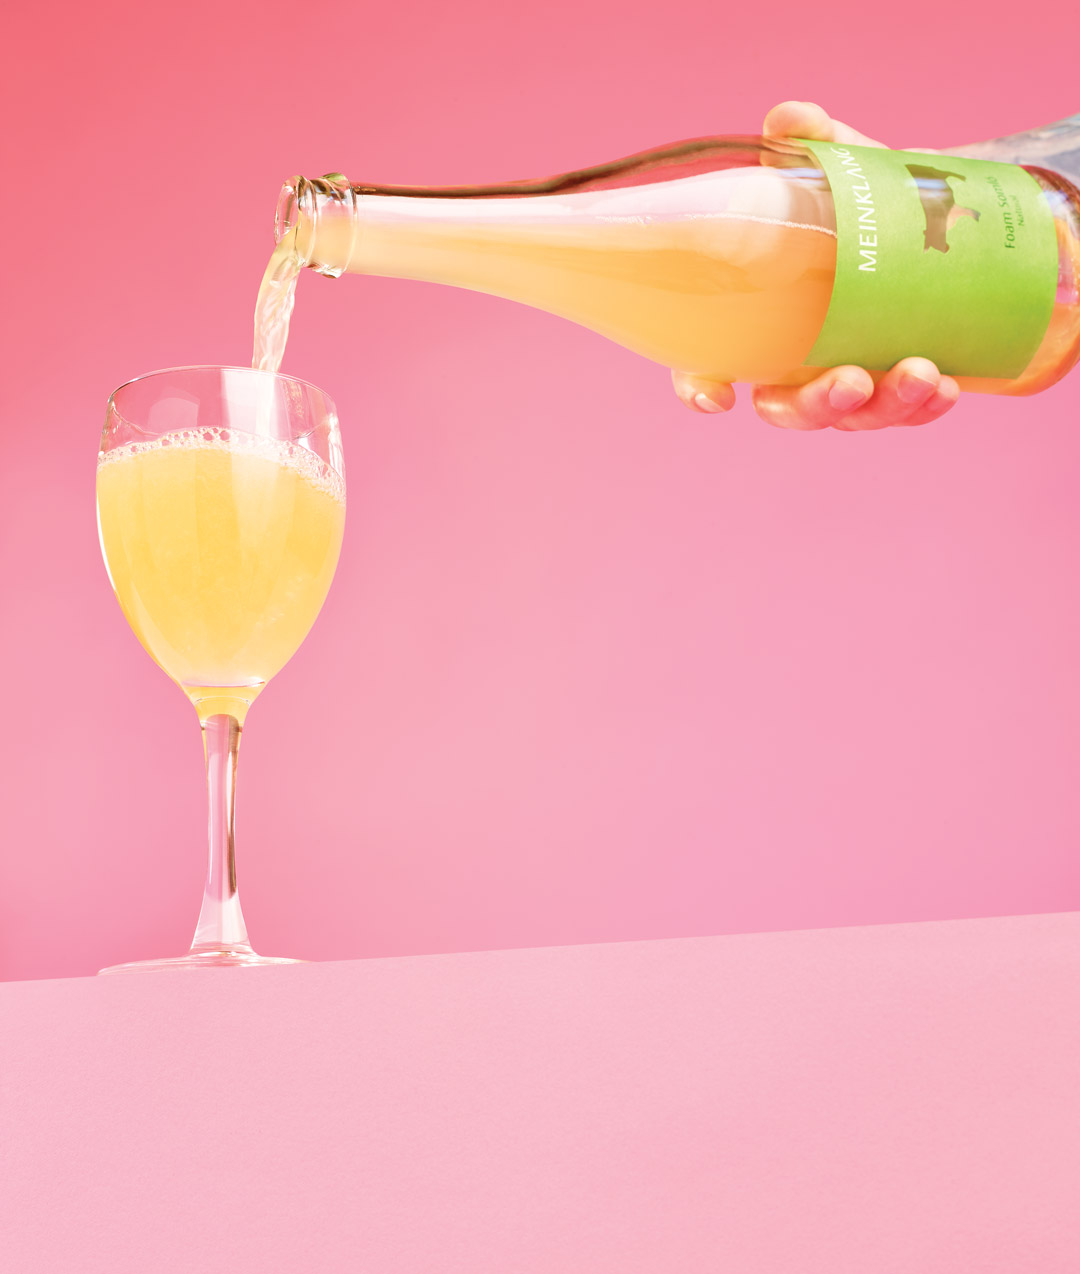 Pét-nats aren't your grandma's sparkling wine (but great-great-grandma would approve)